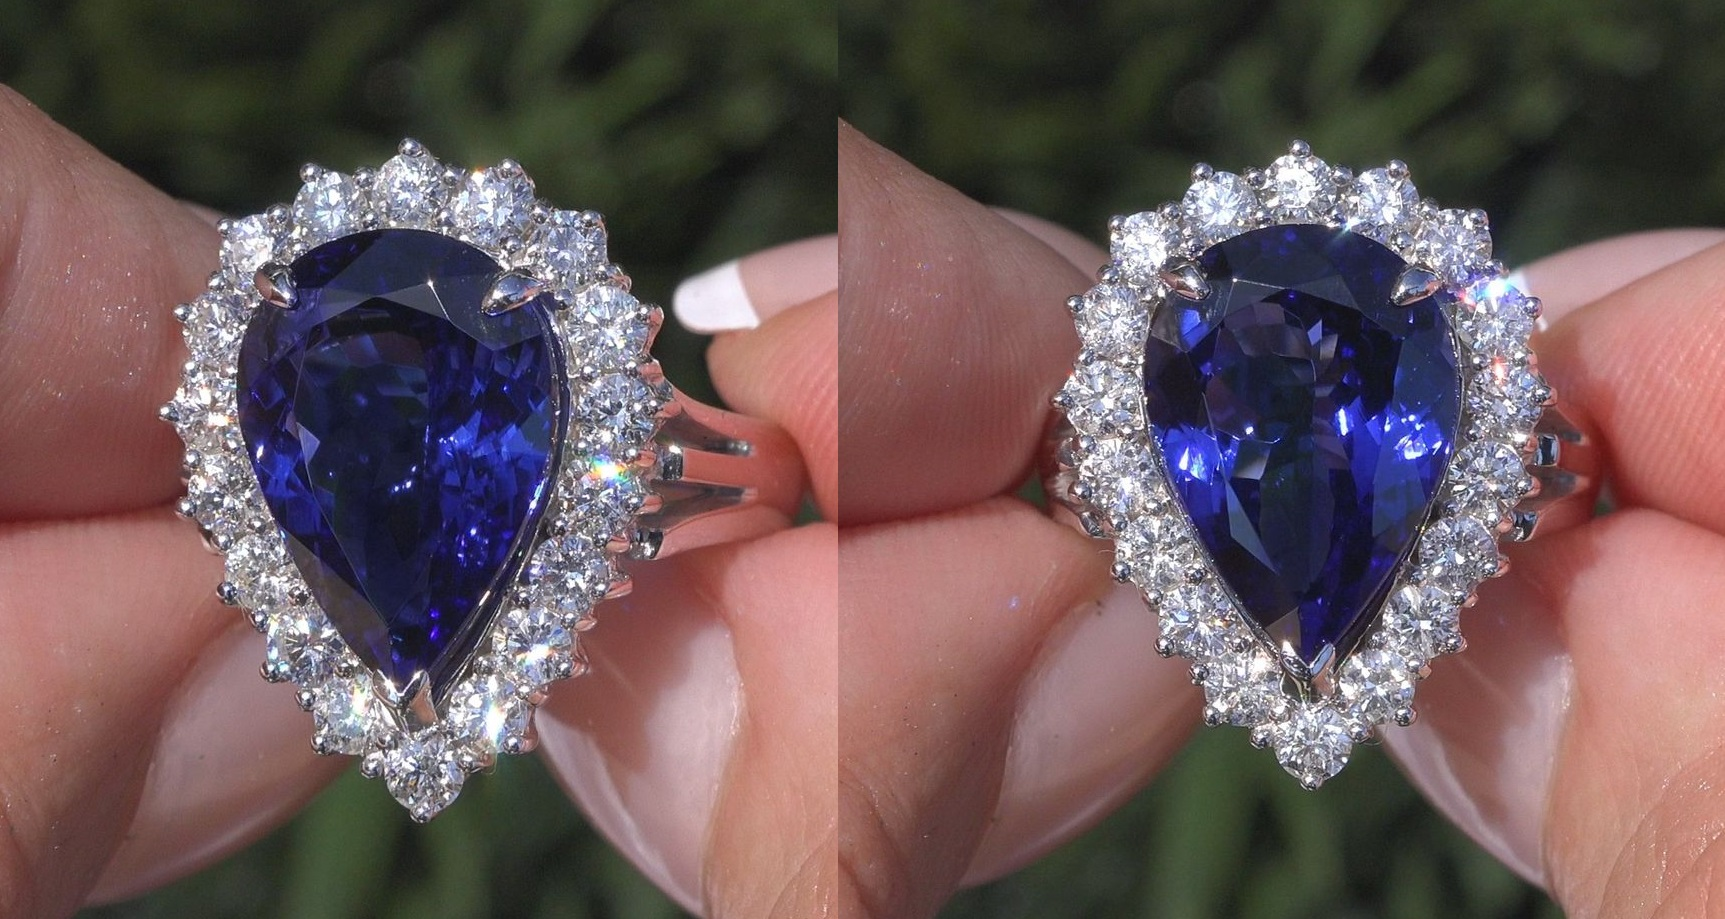 gia with tanzanite weight find the medium sale post few good royal status grade carat oh by inclusions was for natural blue party dimensions posts